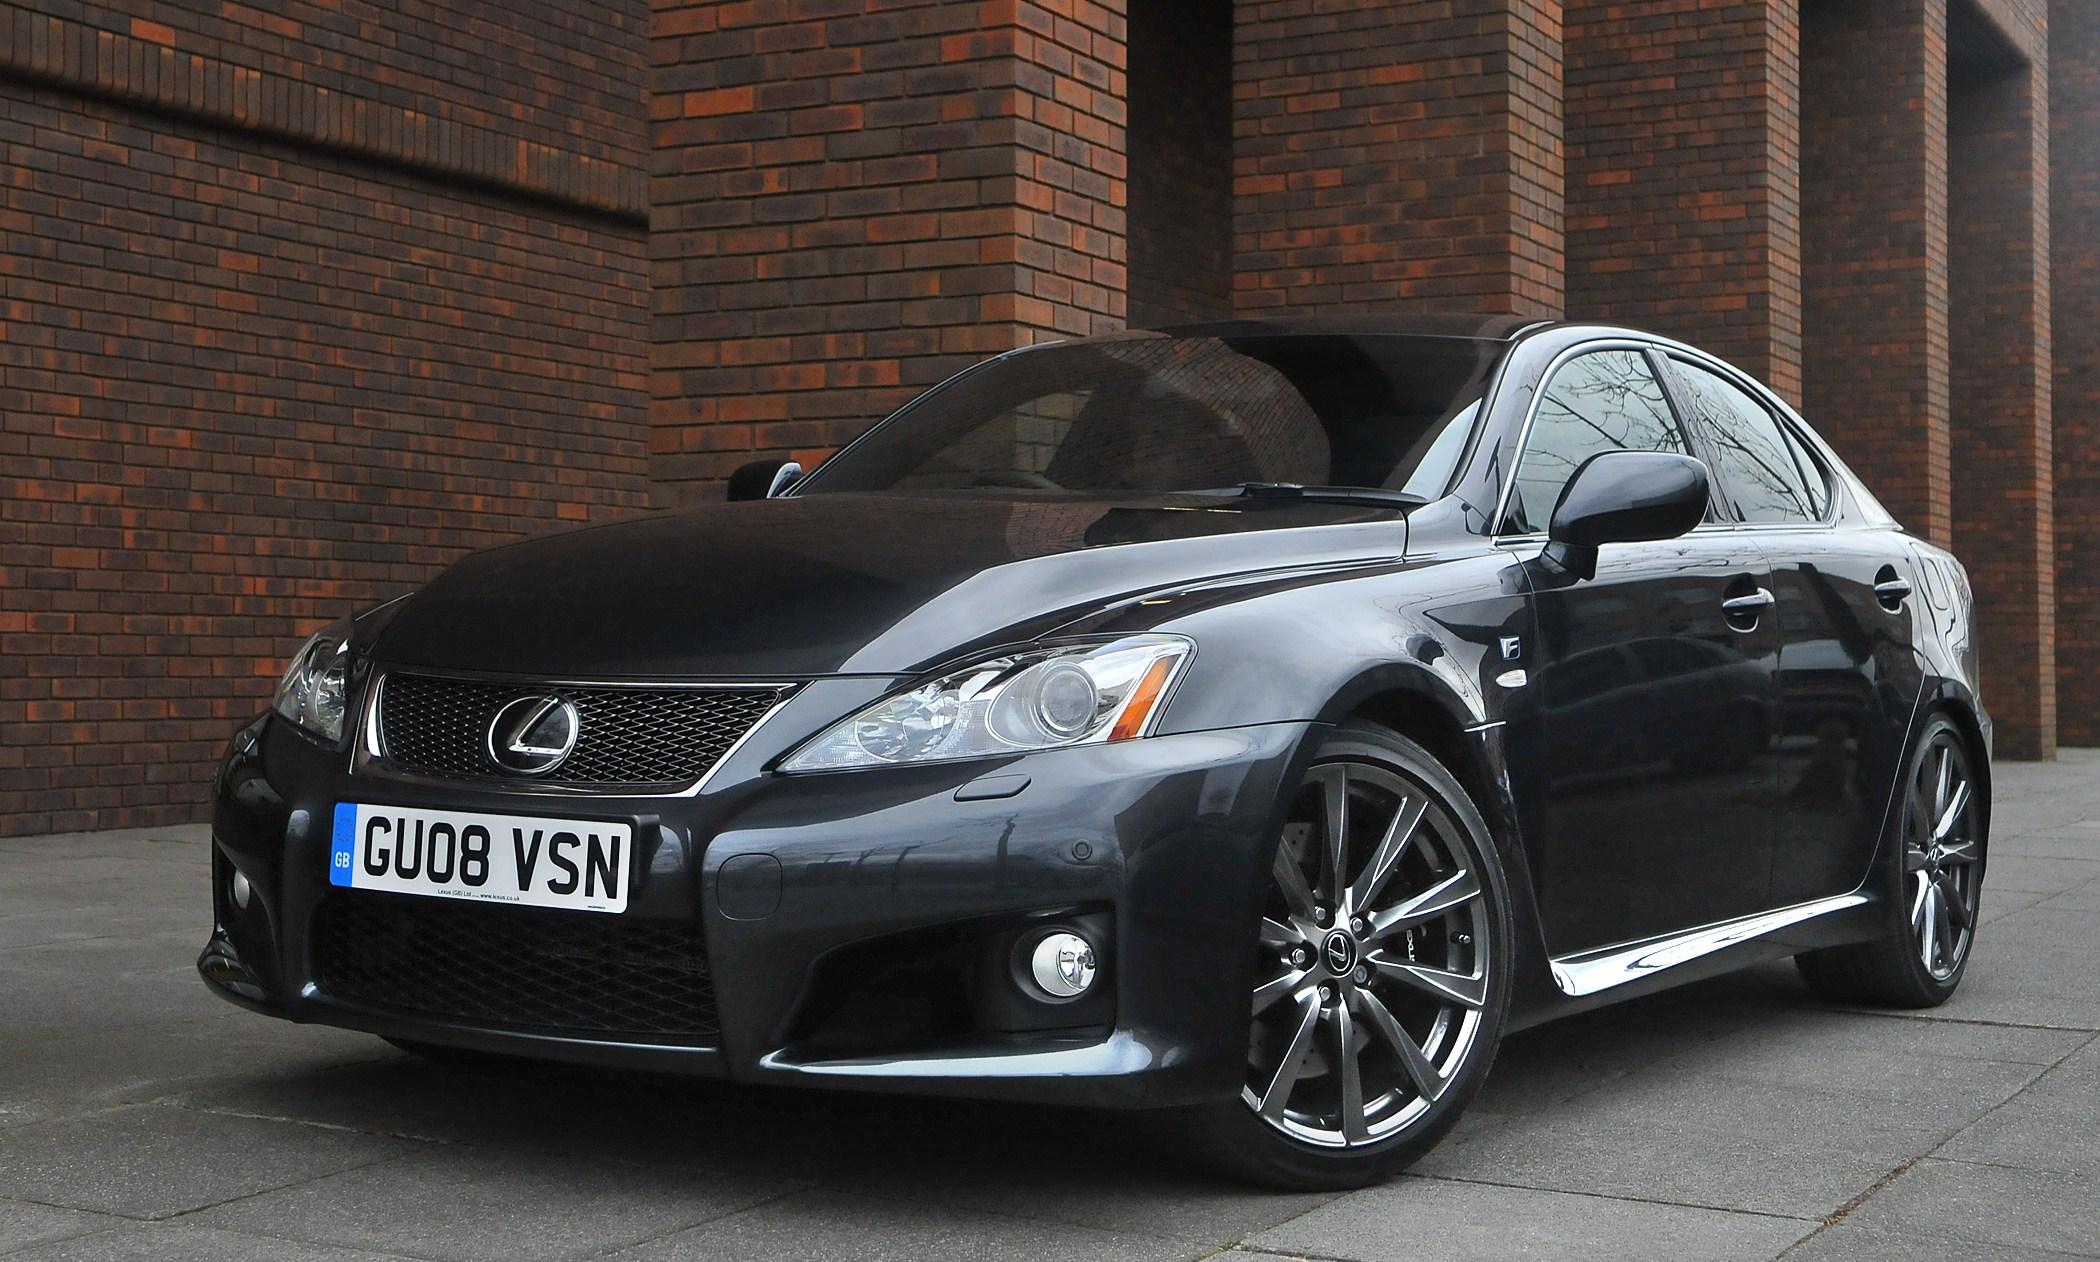 2012 lexus is f price 70 600. Black Bedroom Furniture Sets. Home Design Ideas